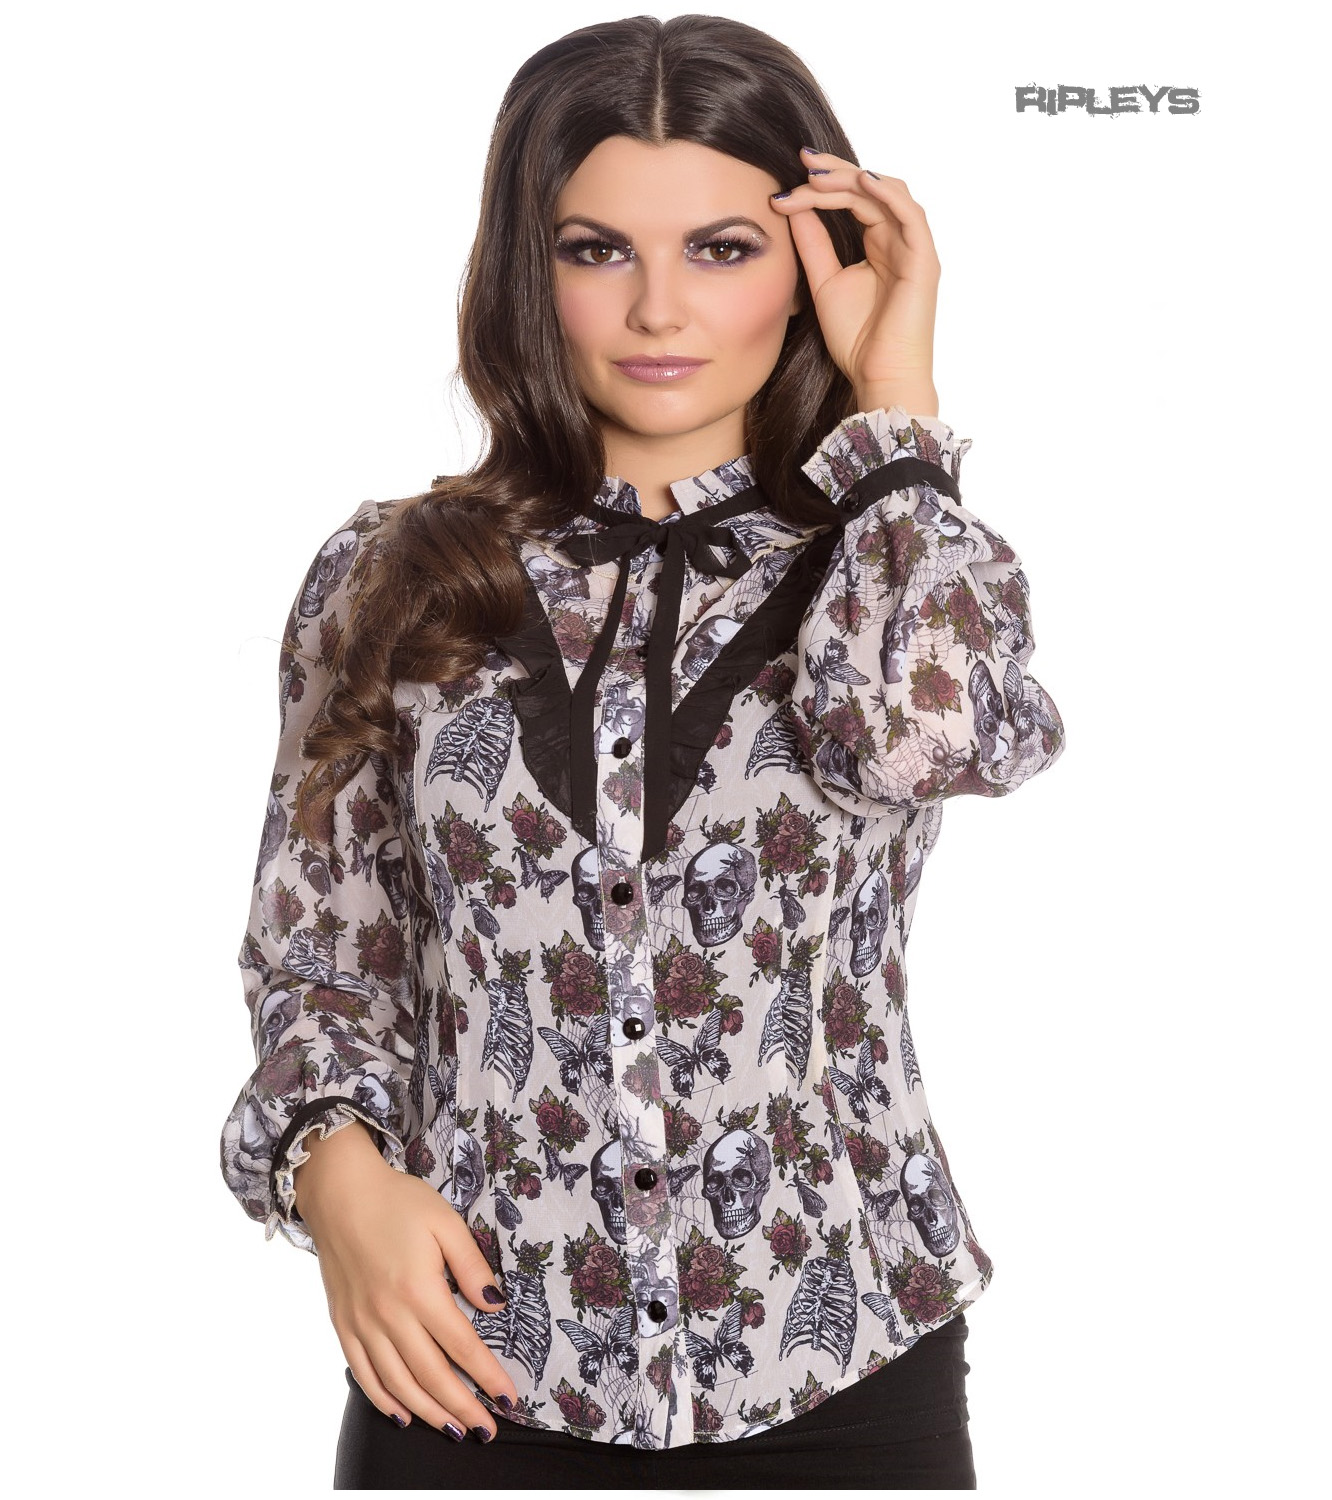 Hell-Bunny-Chiffon-Shirt-Top-Gothic-Skulls-Roses-GRISELDA-Blouse-Ivory-All-Sizes thumbnail 18